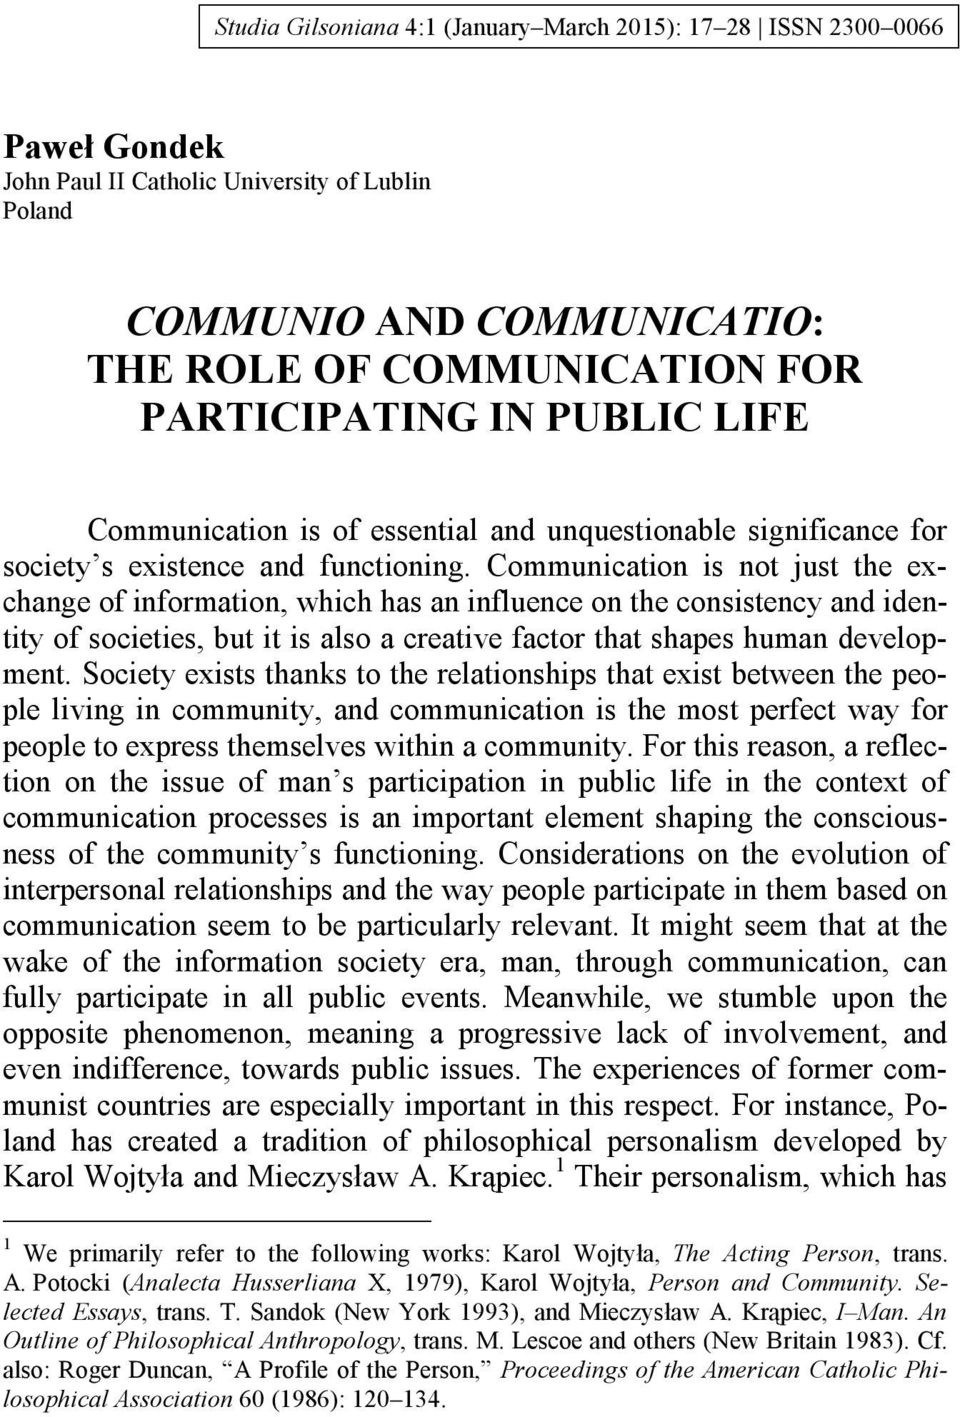 Communication is not just the exchange of information, which has an influence on the consistency and identity of societies, but it is also a creative factor that shapes human development.